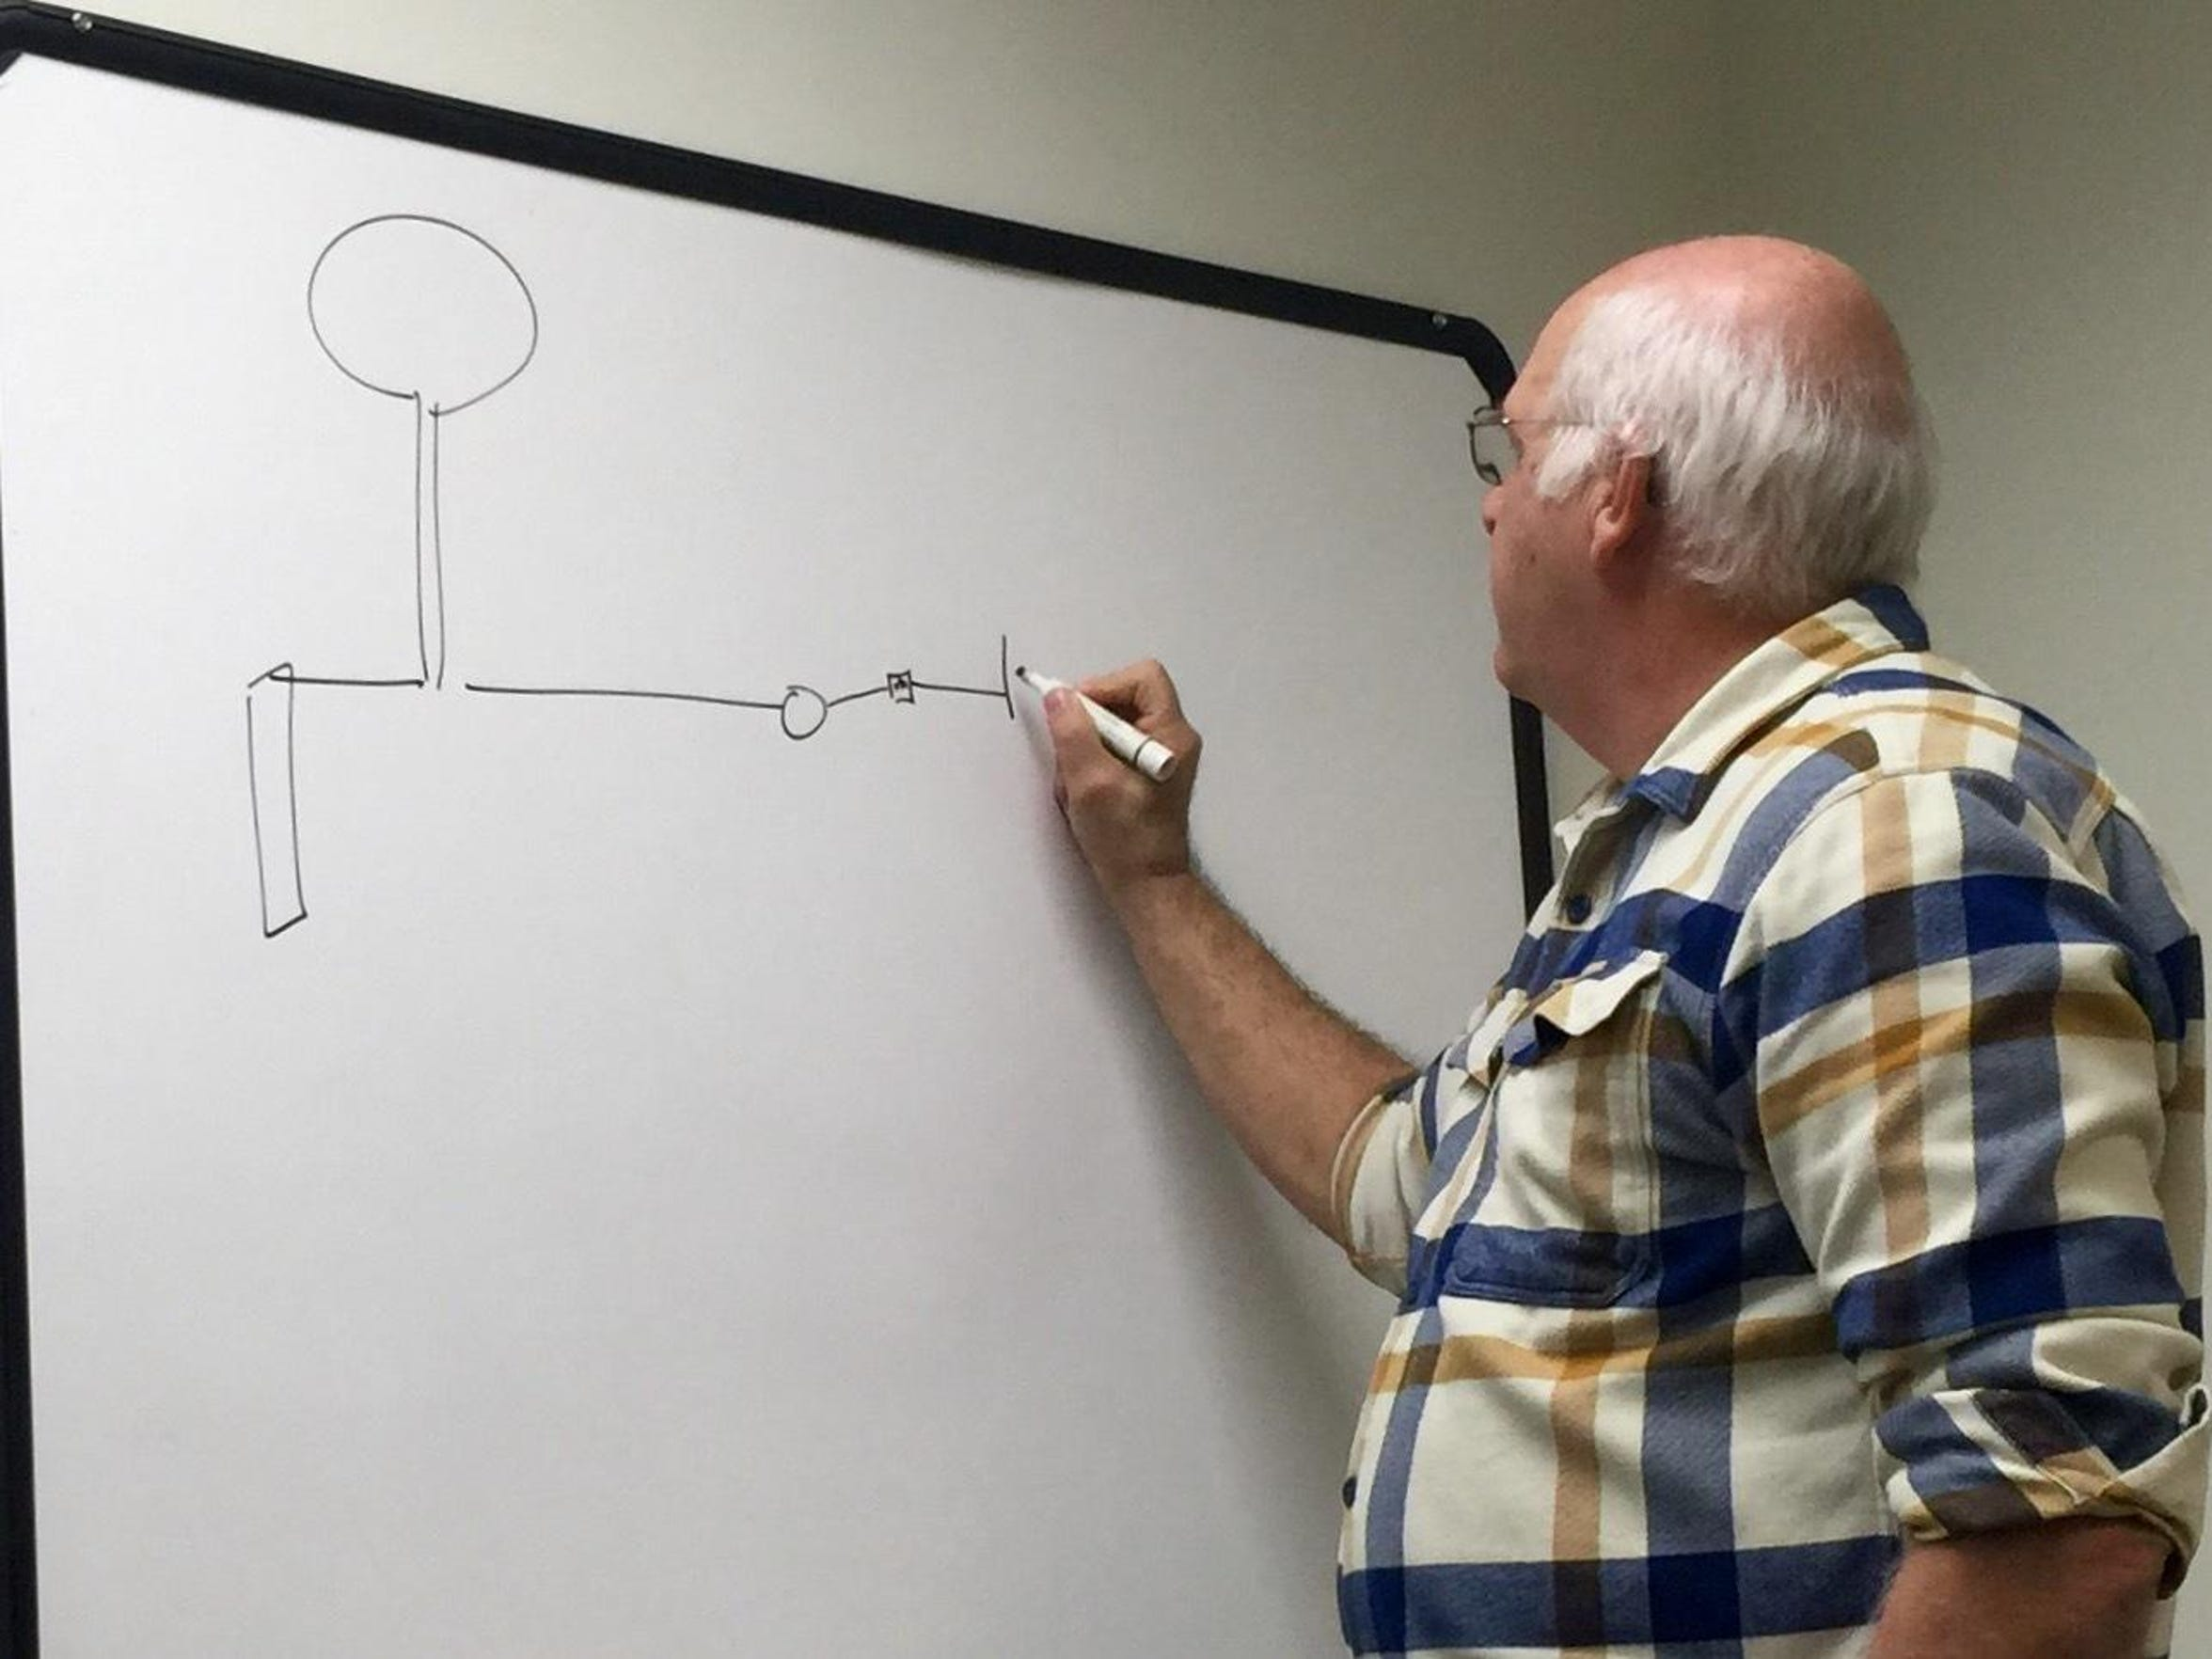 Ken Fanfoni, executive director of Augusta County Service Authority, uses a whiteboard to draw out part of the county's water infrastructure.